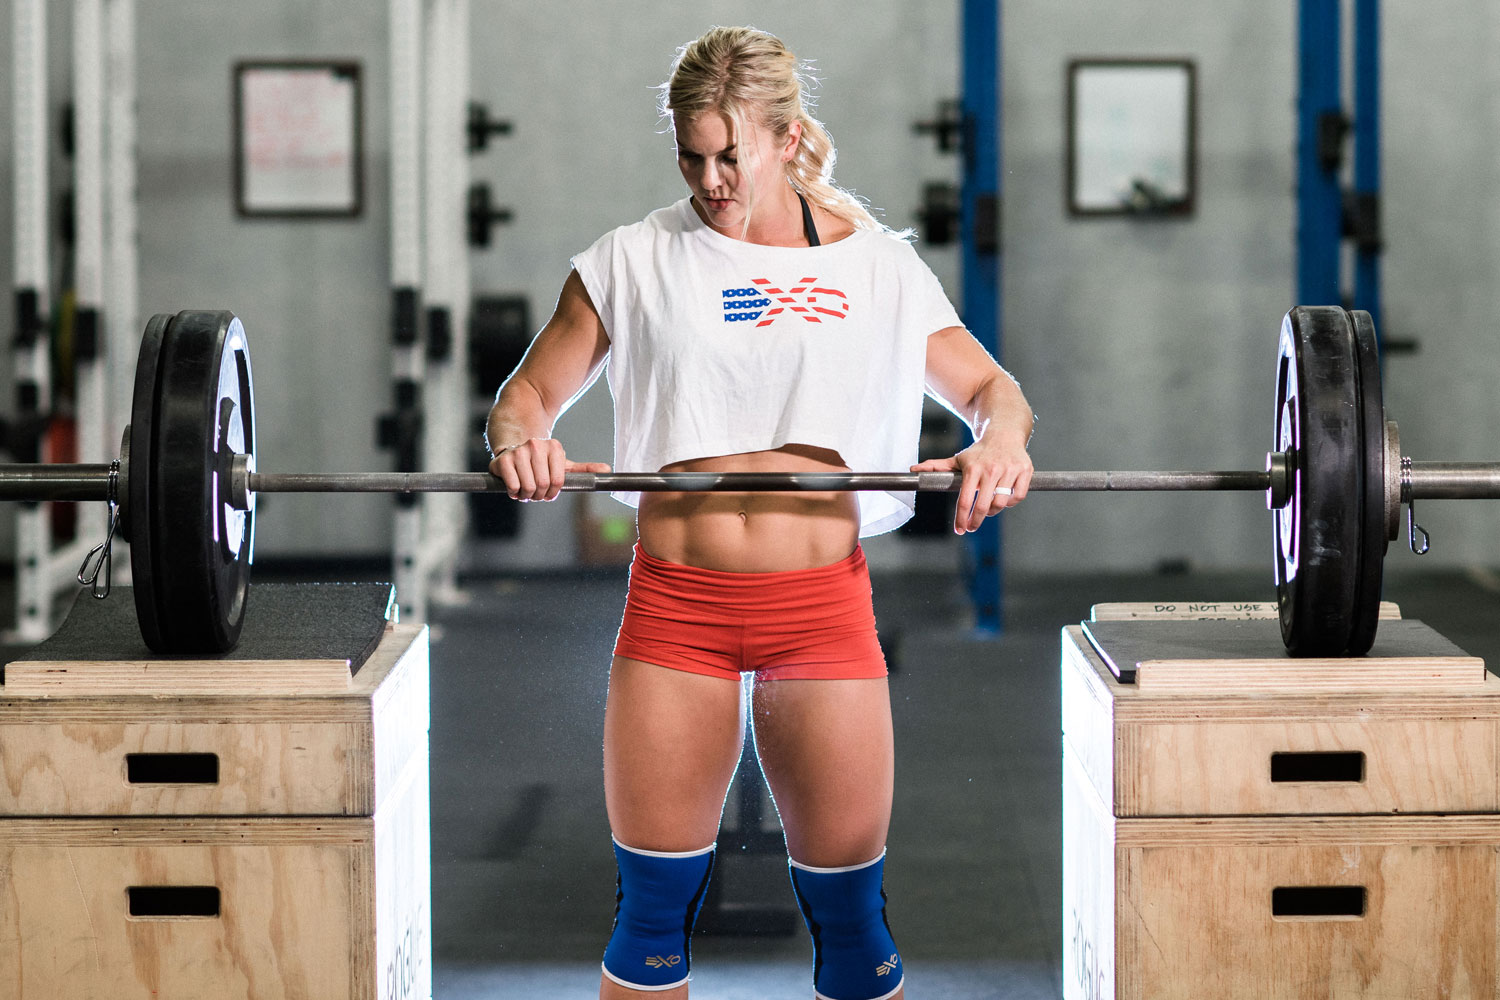 Brooke Ence for Exo